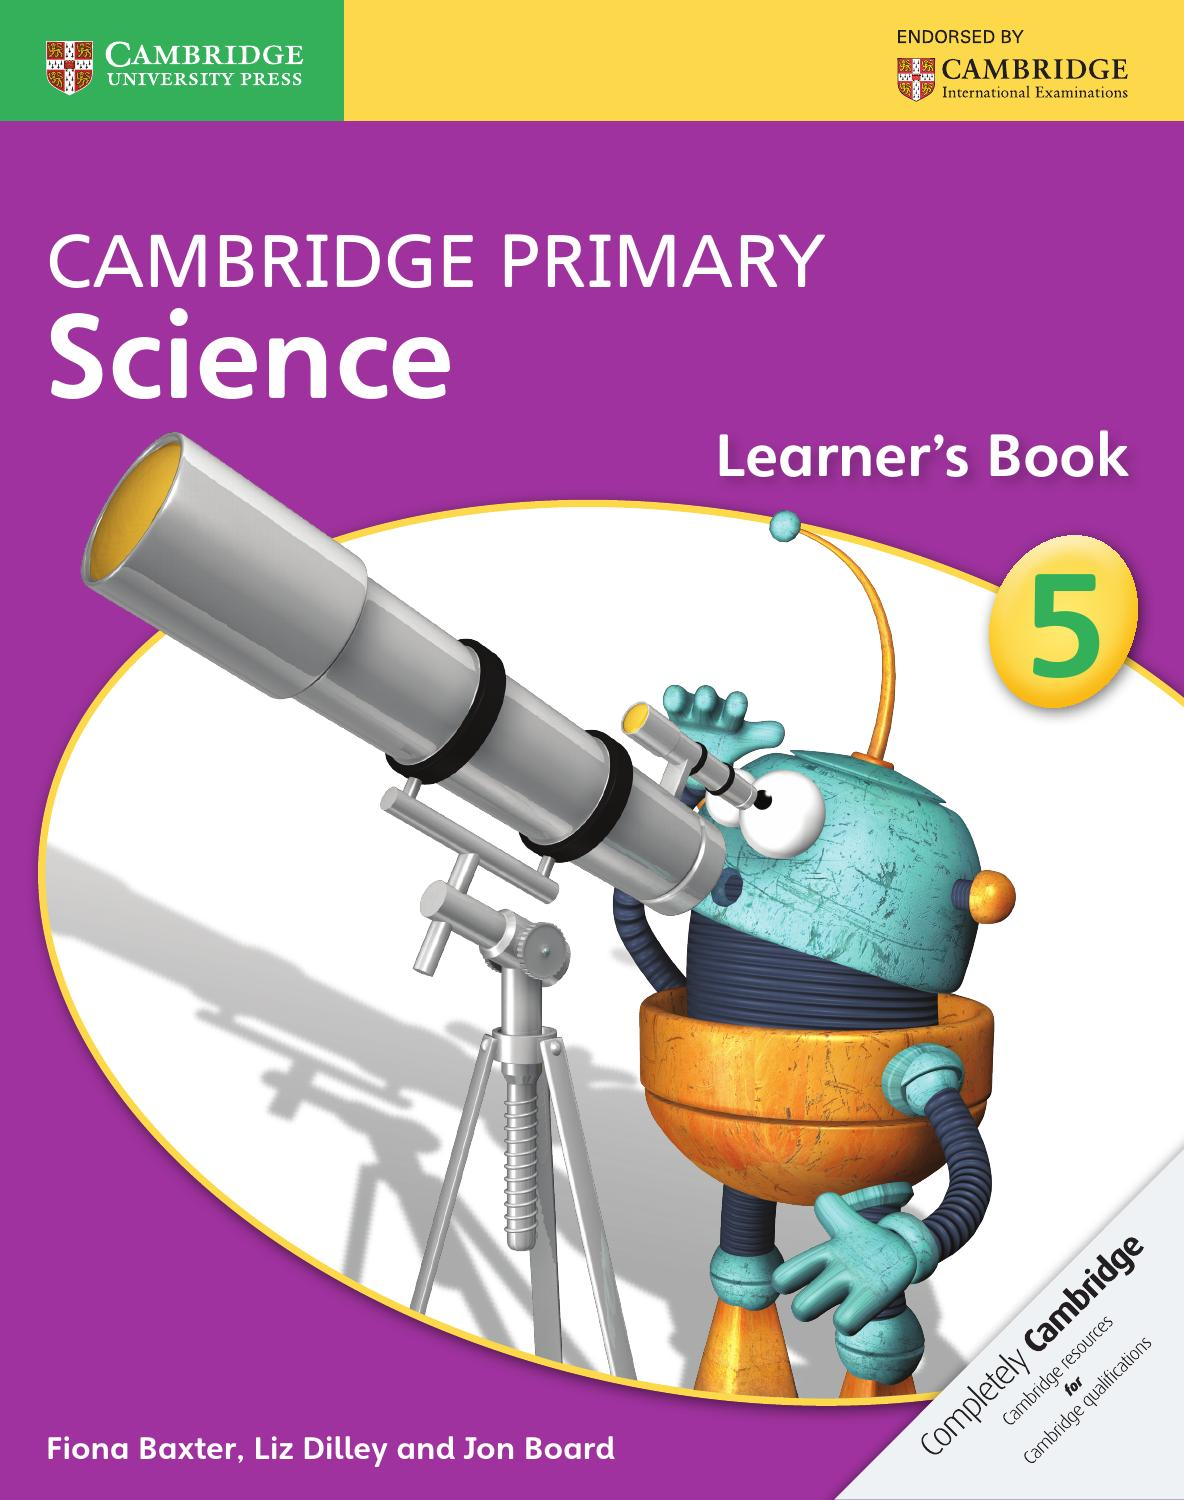 hight resolution of Cambridge Primary Science Learner's Book 5 by Cambridge University Press  Education - issuu